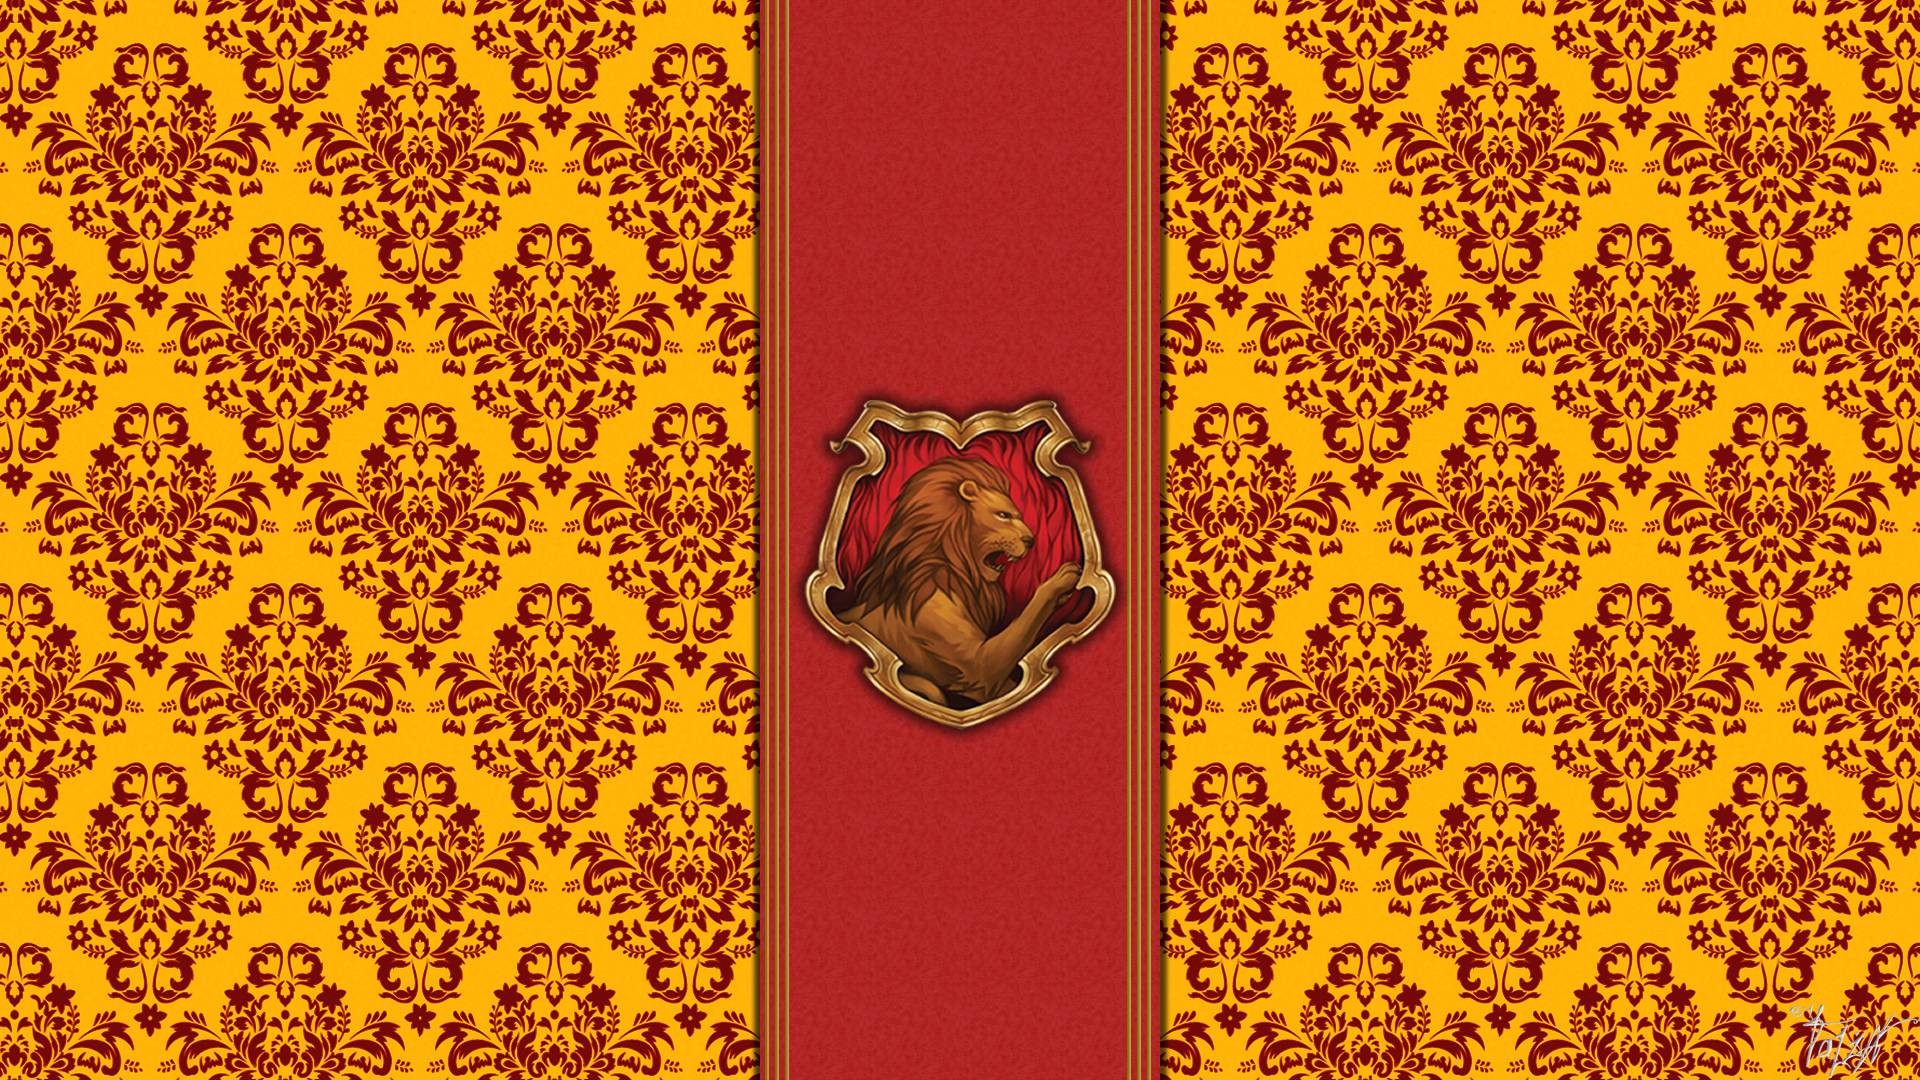 1920x1080 Gryffindor Iphone 5 Wallpaper - Viewing Gallery